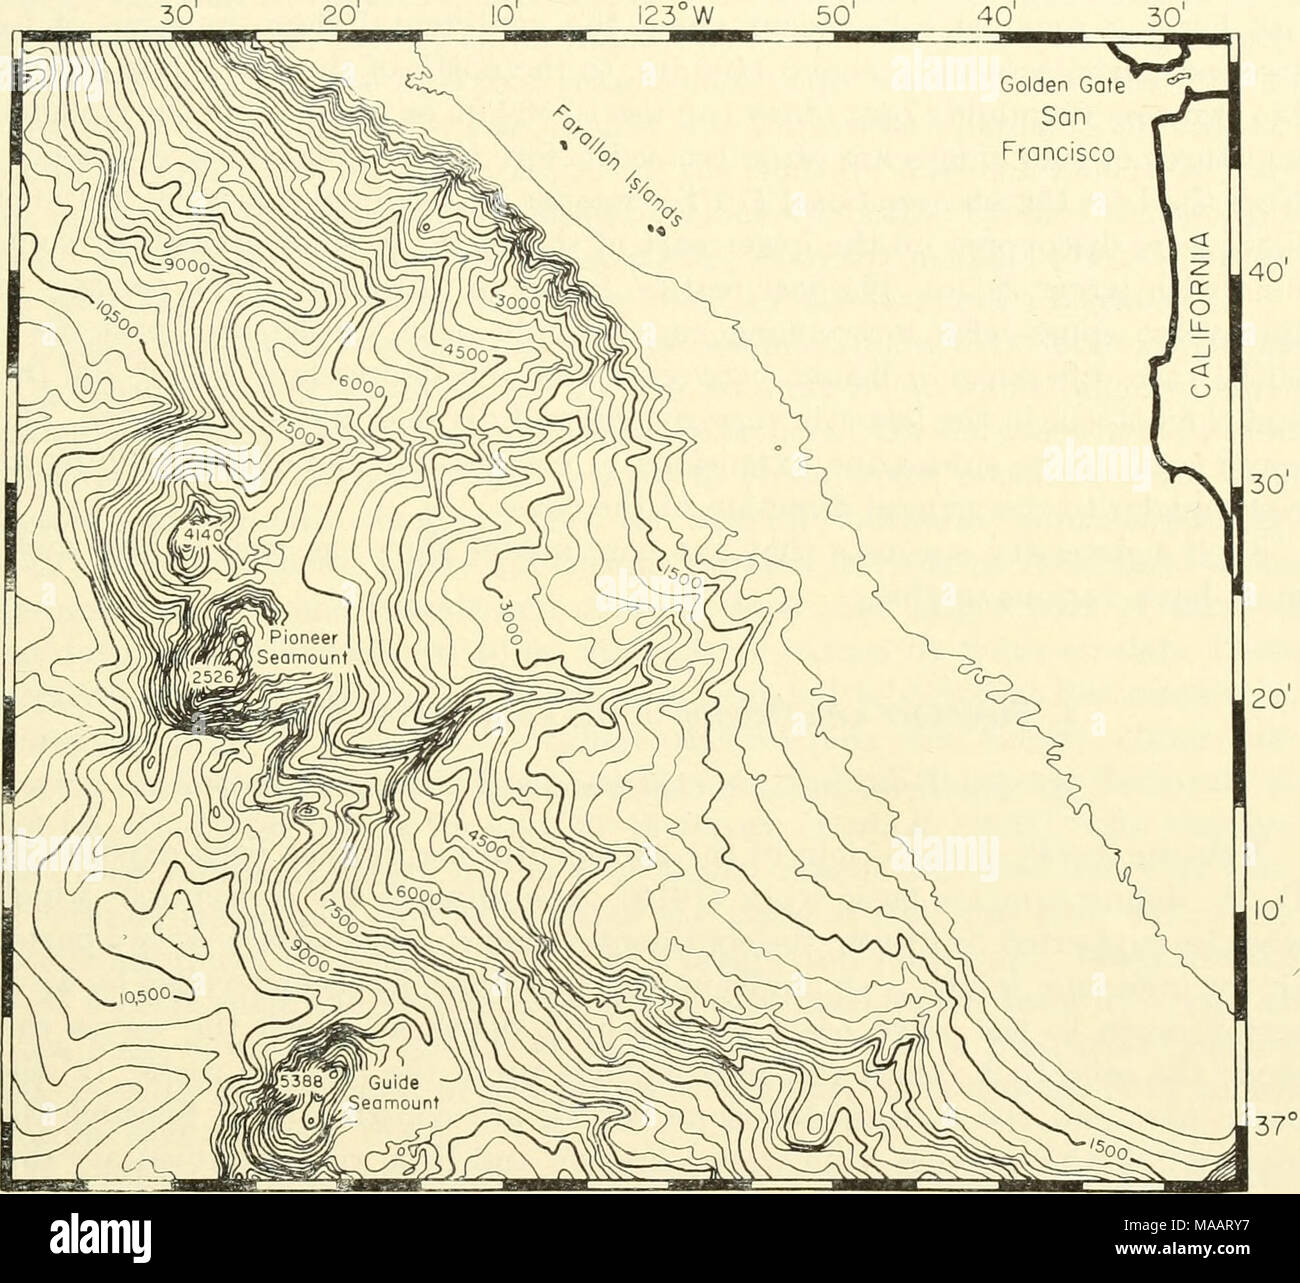 . The Earth beneath the sea : History . 37° N Fig. 7. Continental shelf and slope off San Francisco, California, with canyons and large seamounts on the lower slope. Contour interval 300 ft. (After Shepard and Emery, 1941.) The Russian expeditions to East Antarctica (Jivago and Lissitzin, 1957- 1958) have discovered that the slope off this continent displays a wide variety of types. In front of the Shackleton ice shelf (96°-100°E), and off the Princess Ragnhild Coast (25°-30°E), the slope consists of tilted plains down to 800 fm or more. Off Llitzow-Holm Bay (38°E), and to the south of the Ker - Stock Image